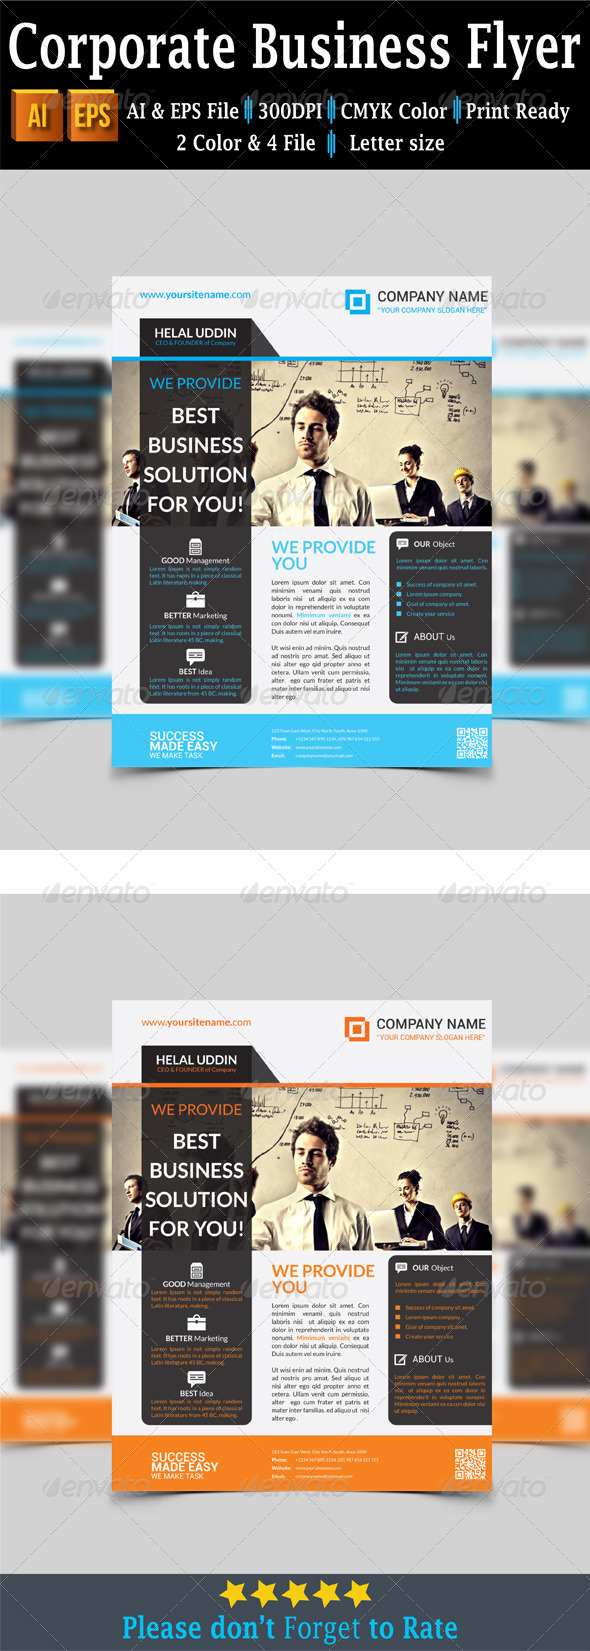 GraphicRiver Corporate Business Flyer 7650947